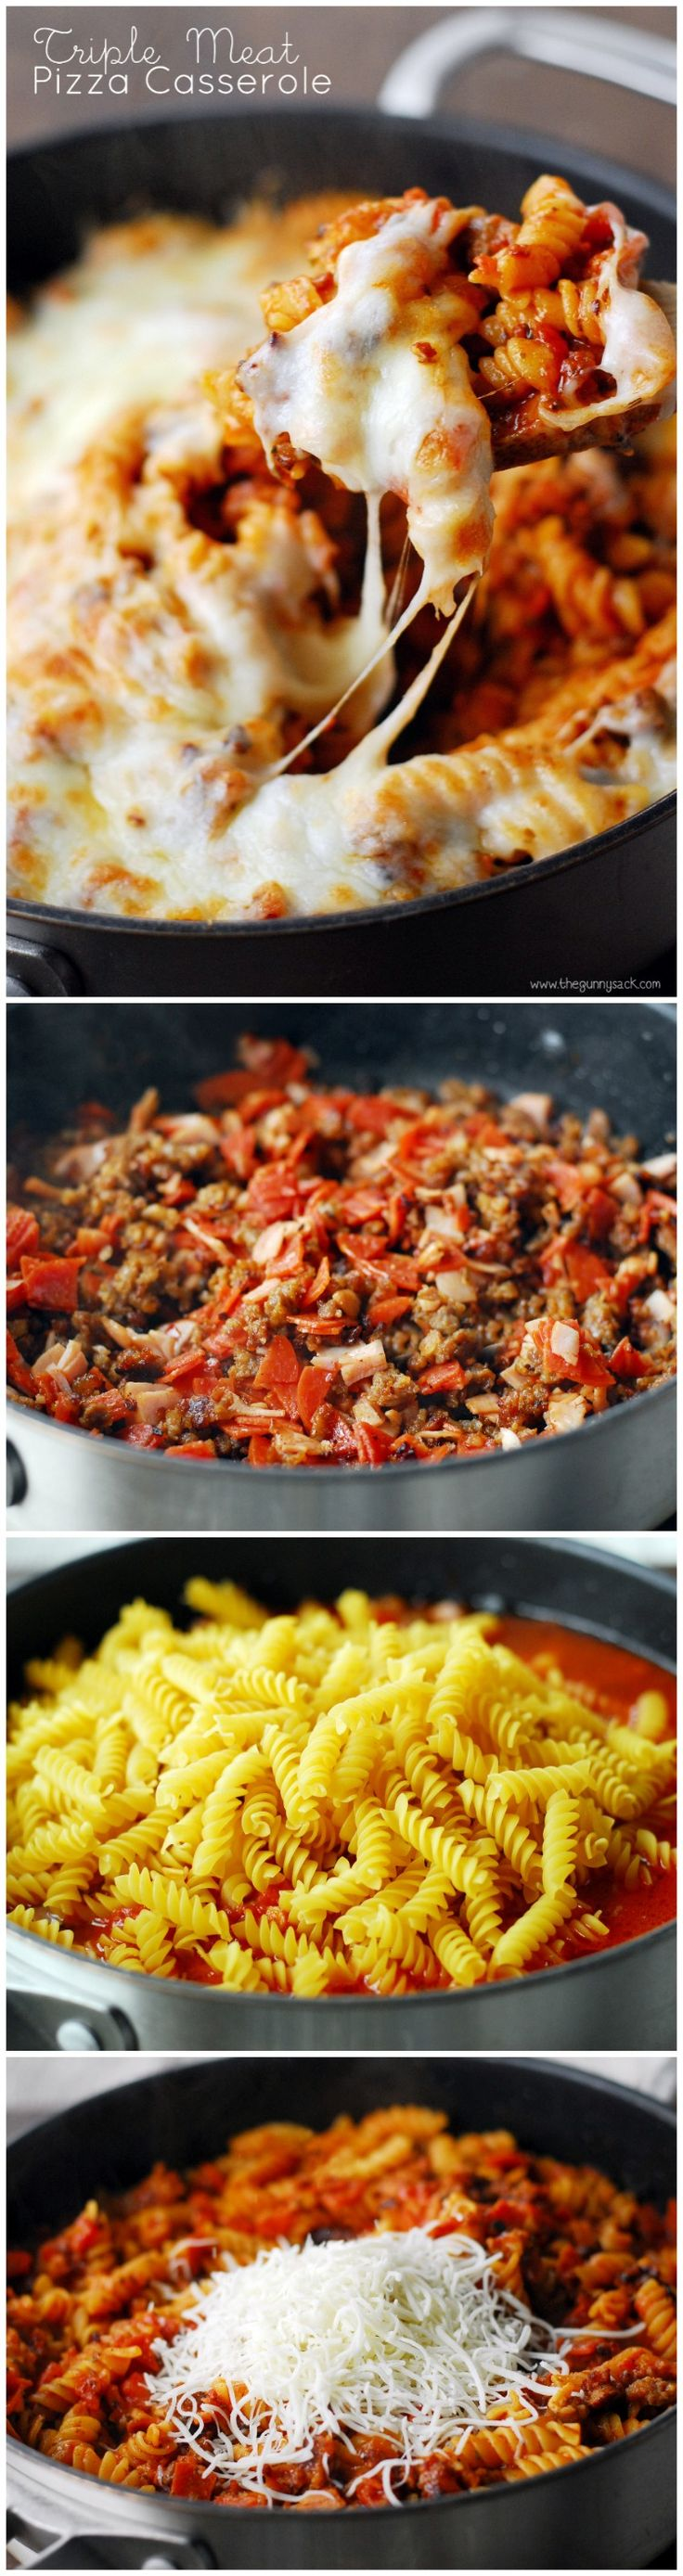 Triple Meat Pizza Casserole is a delicious one-pot dinner that can be made in 30 minutes! #pasta_recipes